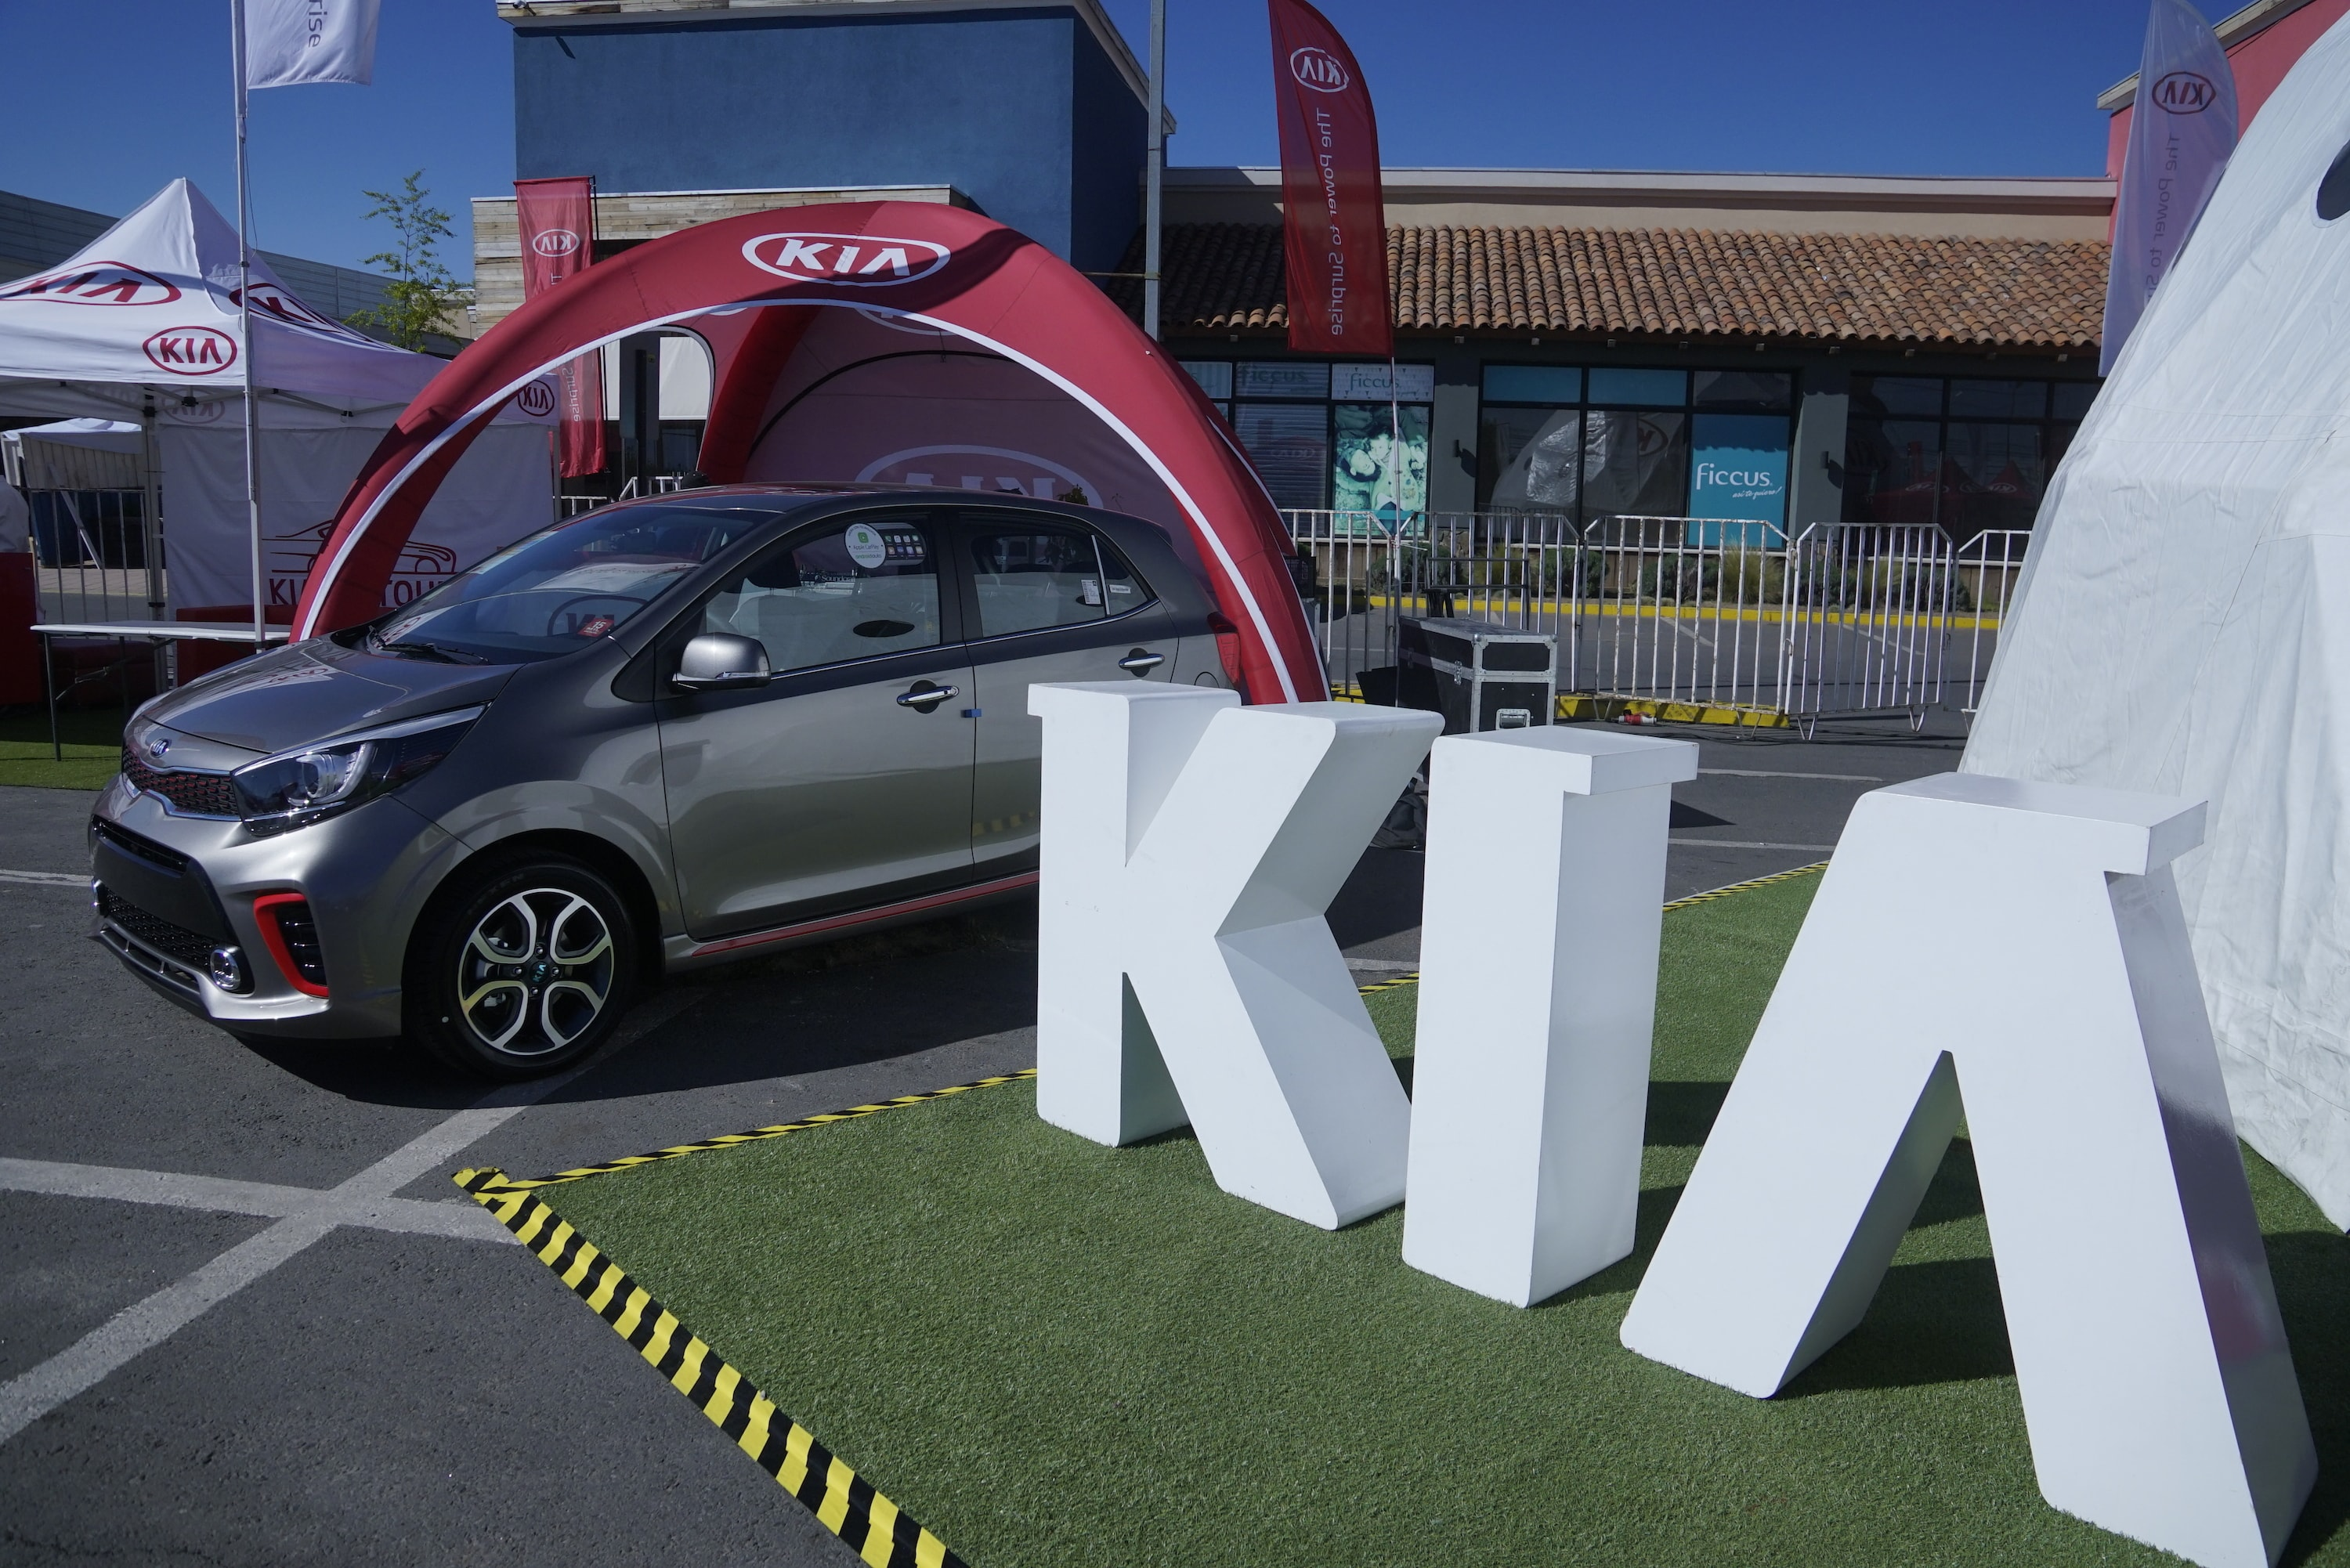 EL ACLAMADO 'KIA ON TOUR' ATERRIZA EN MOVICENTER